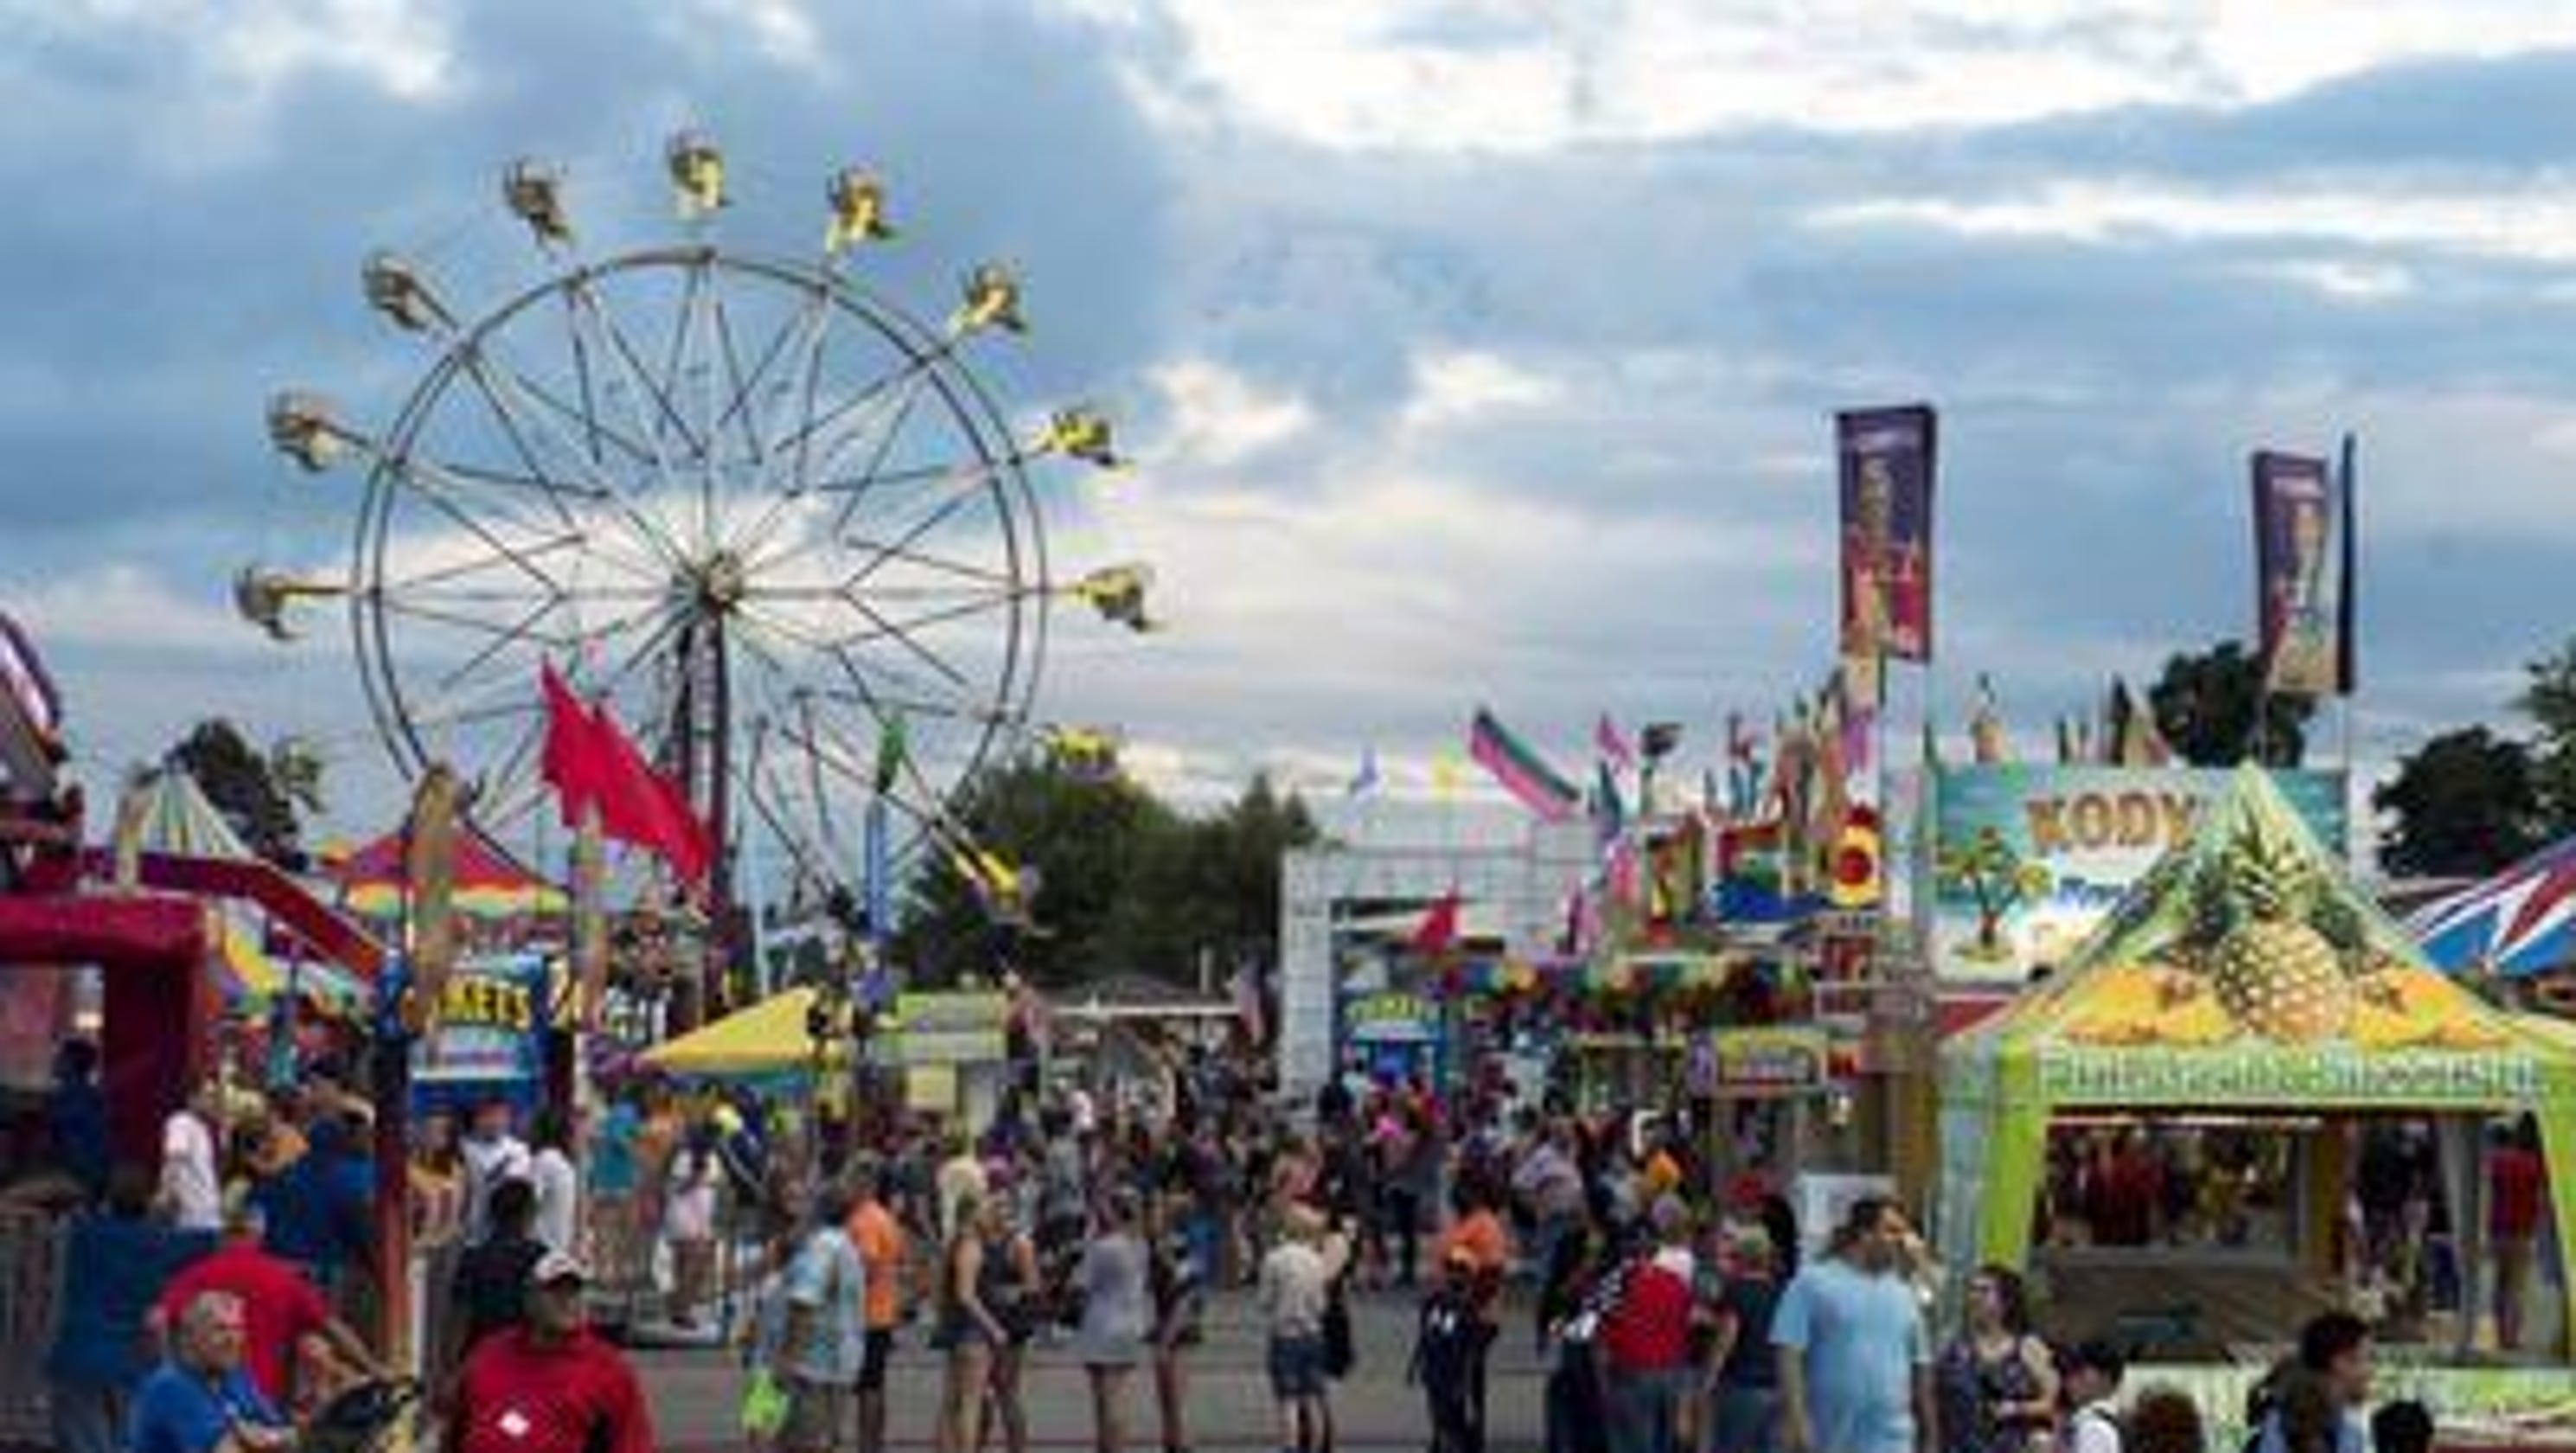 2019 Wilson County Fair: What you should know